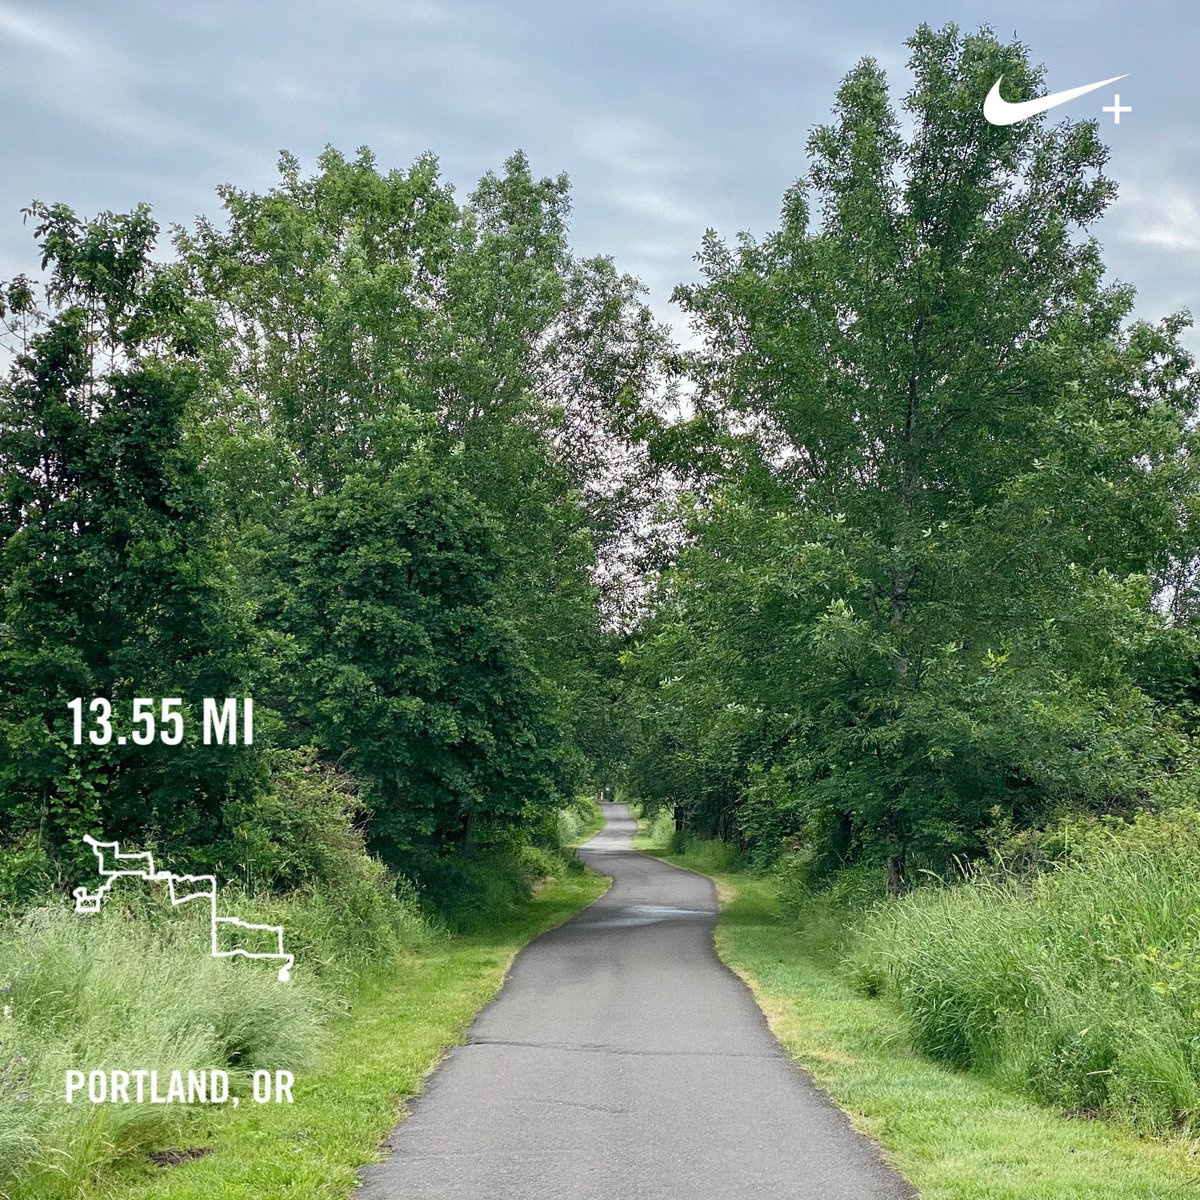 Social distance running, completed half marathon today and total 124 miles in the month of May. Ran 13.55 miles with Nike⁠ Run Club #nrc #nikerunning #nike #justdoit #playfortheworld #htcrelay ⁦@HTCRelay⁩pic.twitter.com/VqxnbNRMvk